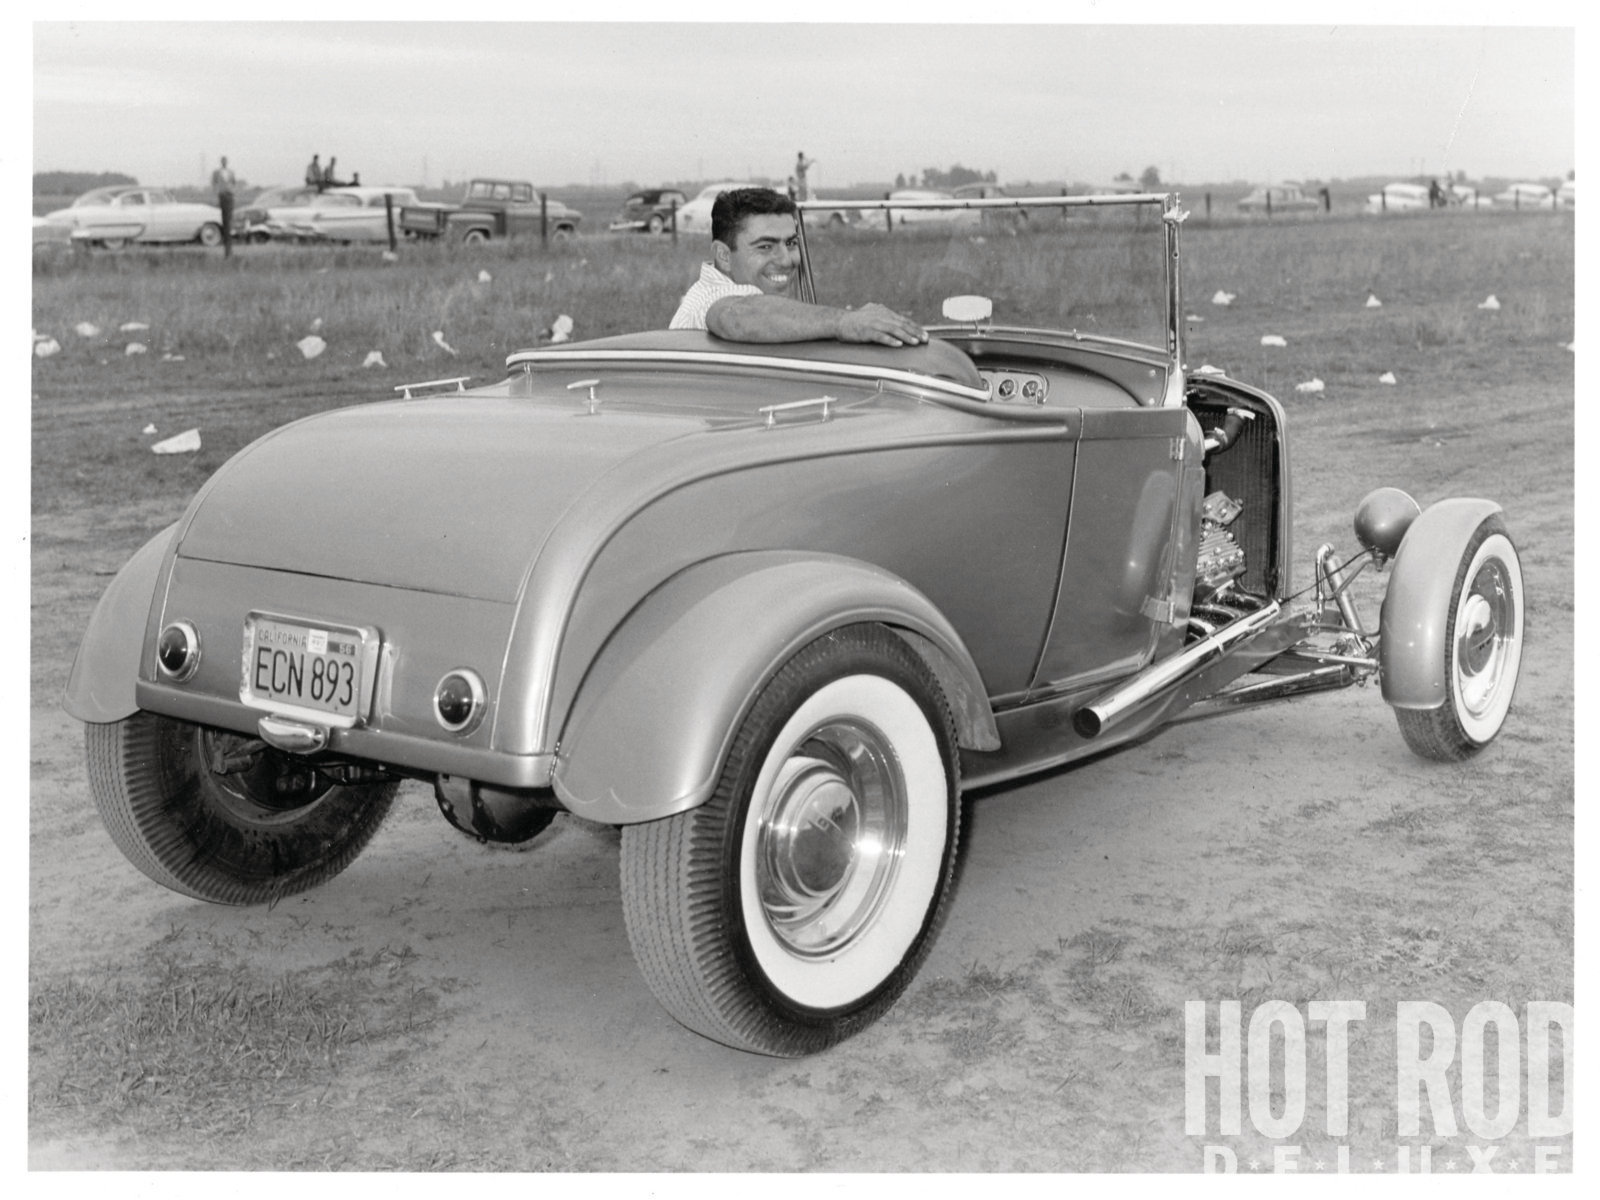 Still a teenager in 1957, Rich Guasco looks as proud as he ought to be of his silver-blue roadster. The 1⁄8x1⁄8-inch Merc flathead with Offenhauser heads, a Weiand three-pot manifold, and Harman and Collins ignition was strong enough to push the '29 to a speed of 102 mph at Kingdon Drag Strip in Lodi. The split front wishbone, '39 Ford trans, and '48 rearend followed standard '50s hot rod practice.